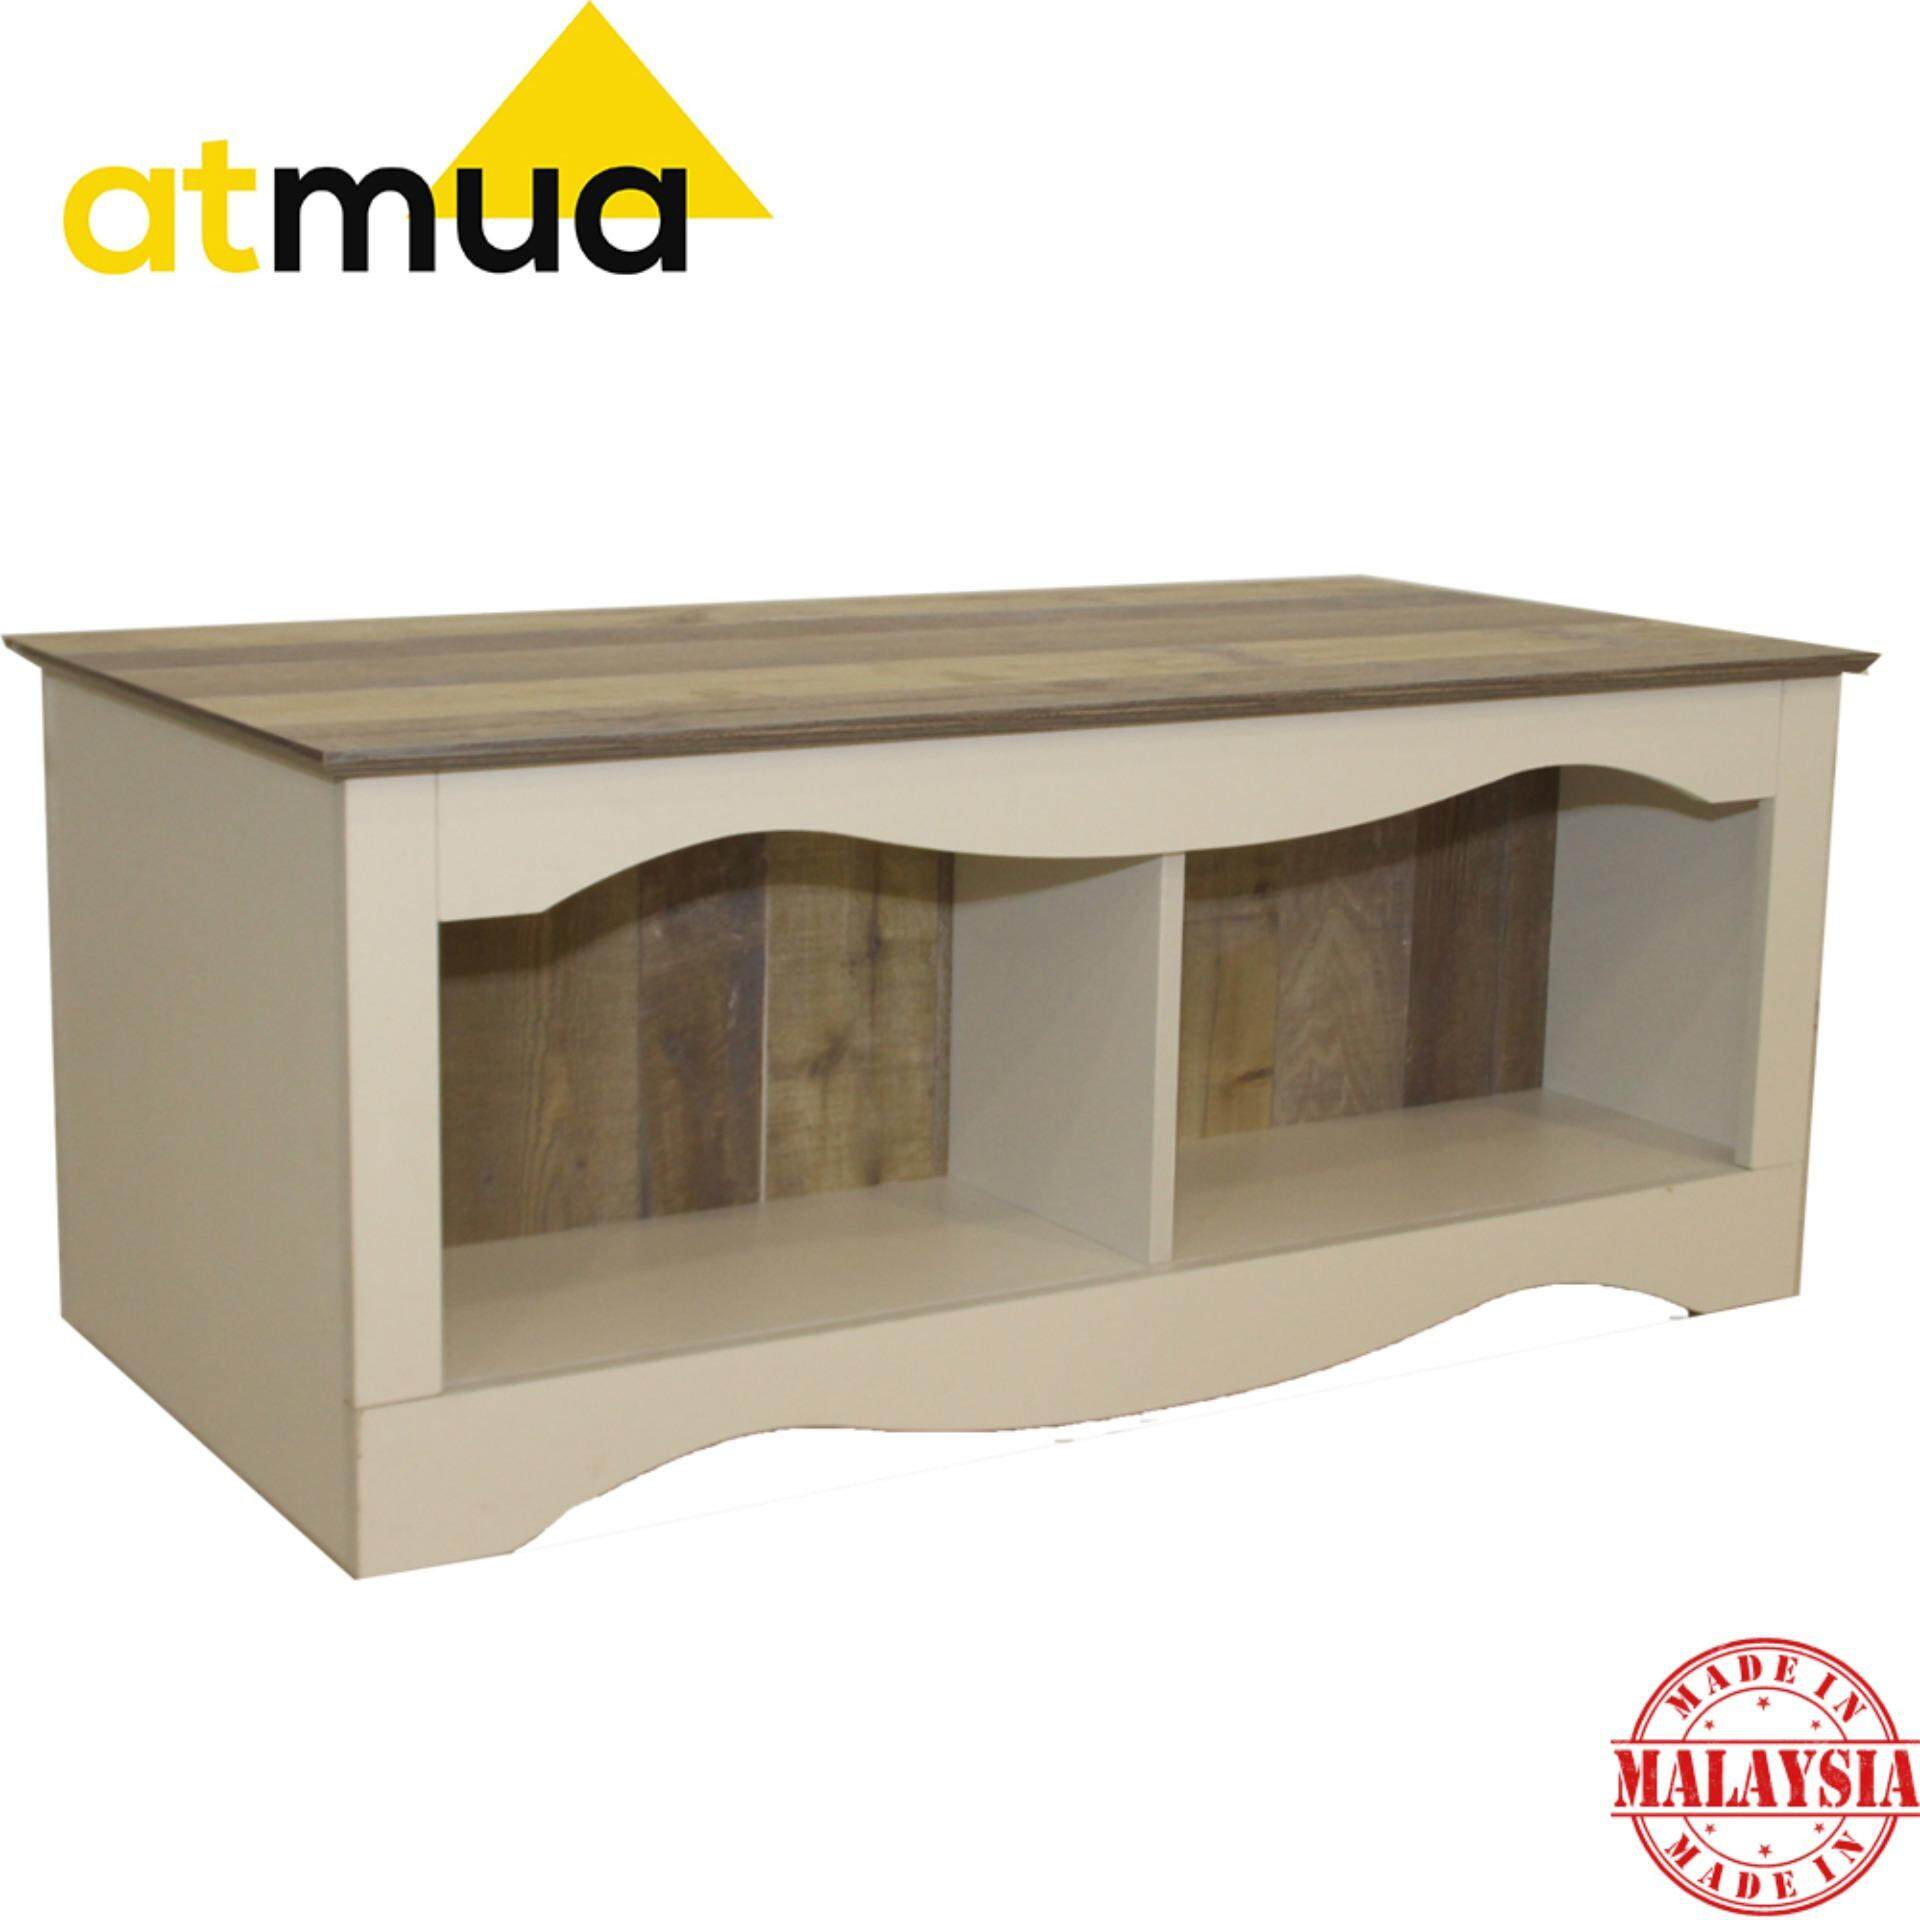 Atmua Ibul Coffee Table [High Quality Partical Board]